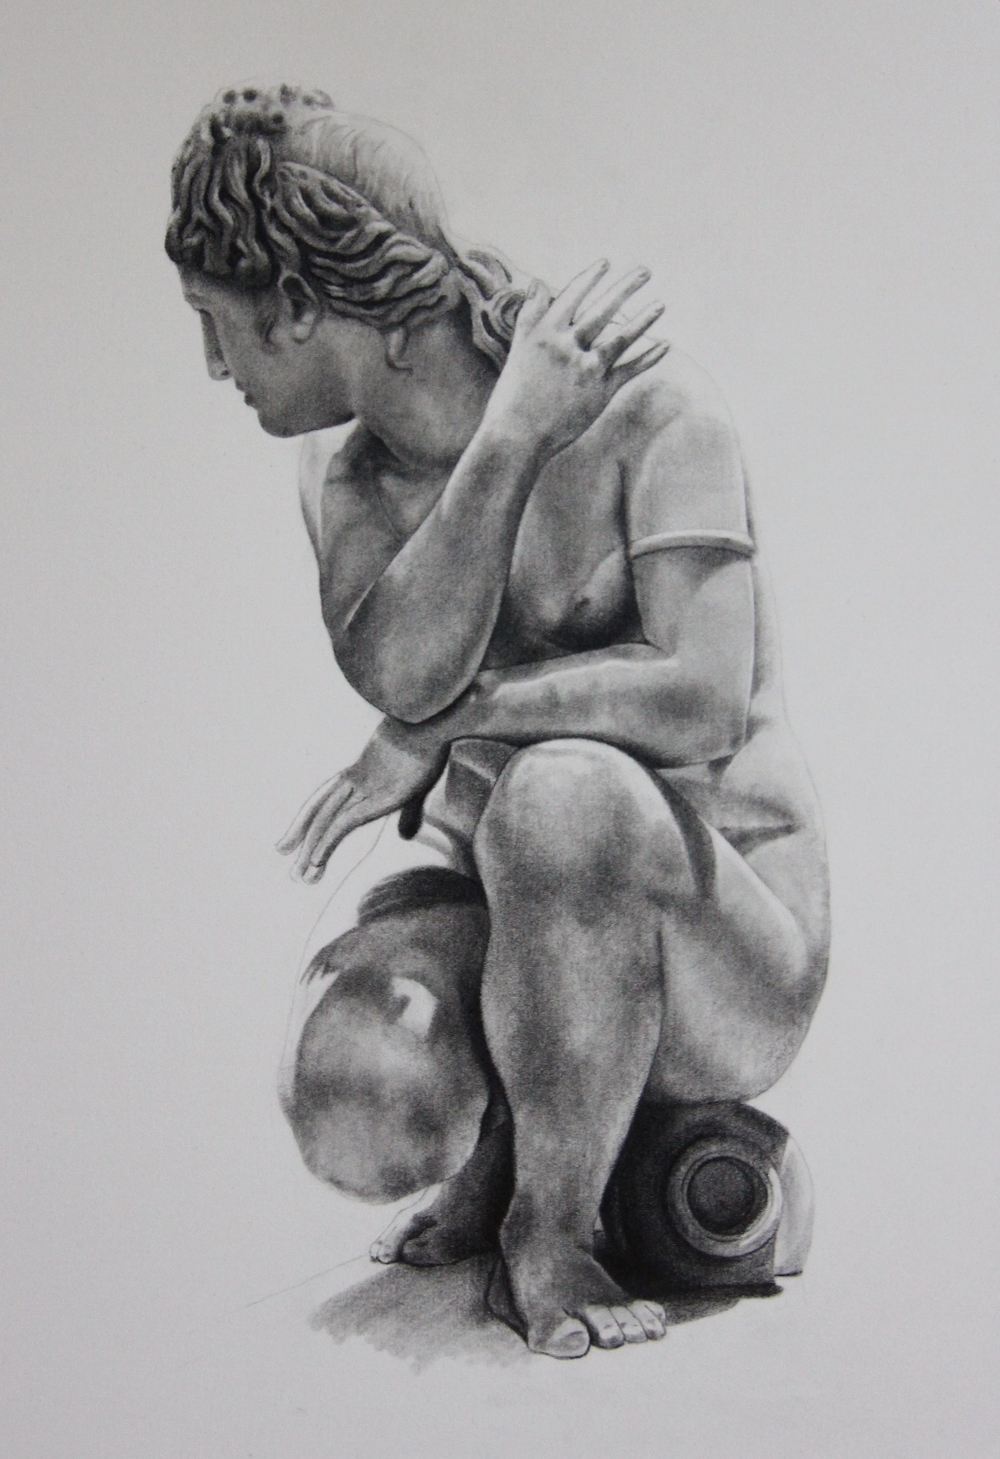 Statue - Pencil On Paper (26x36cm)